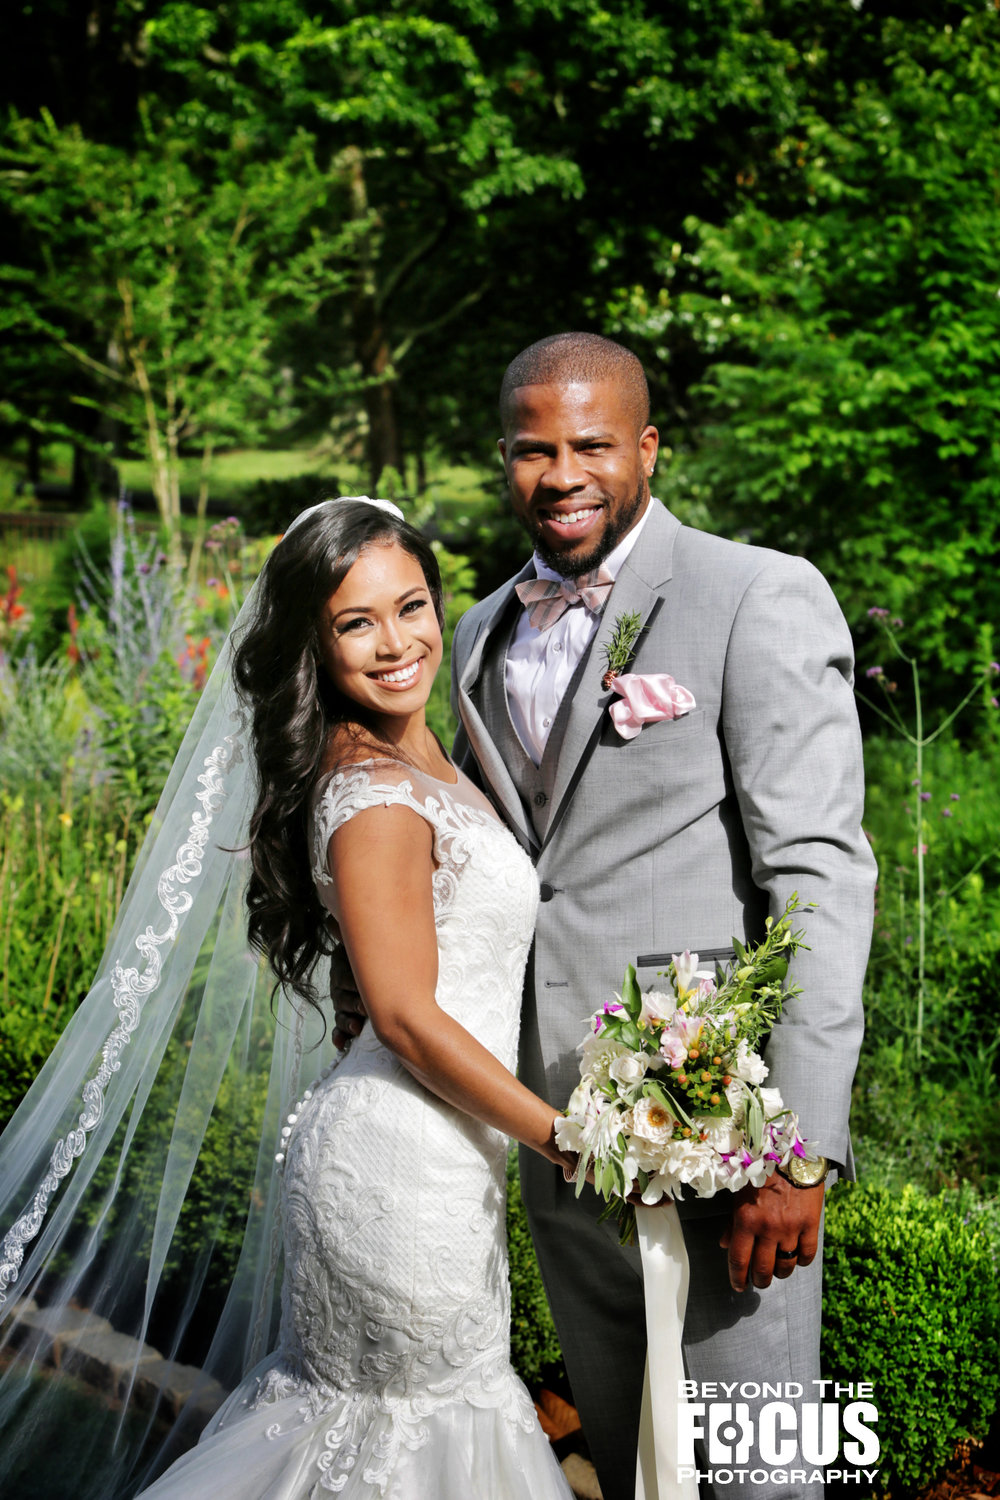 Christan_Imani_WeddingPartyFamily_W_23.jpg